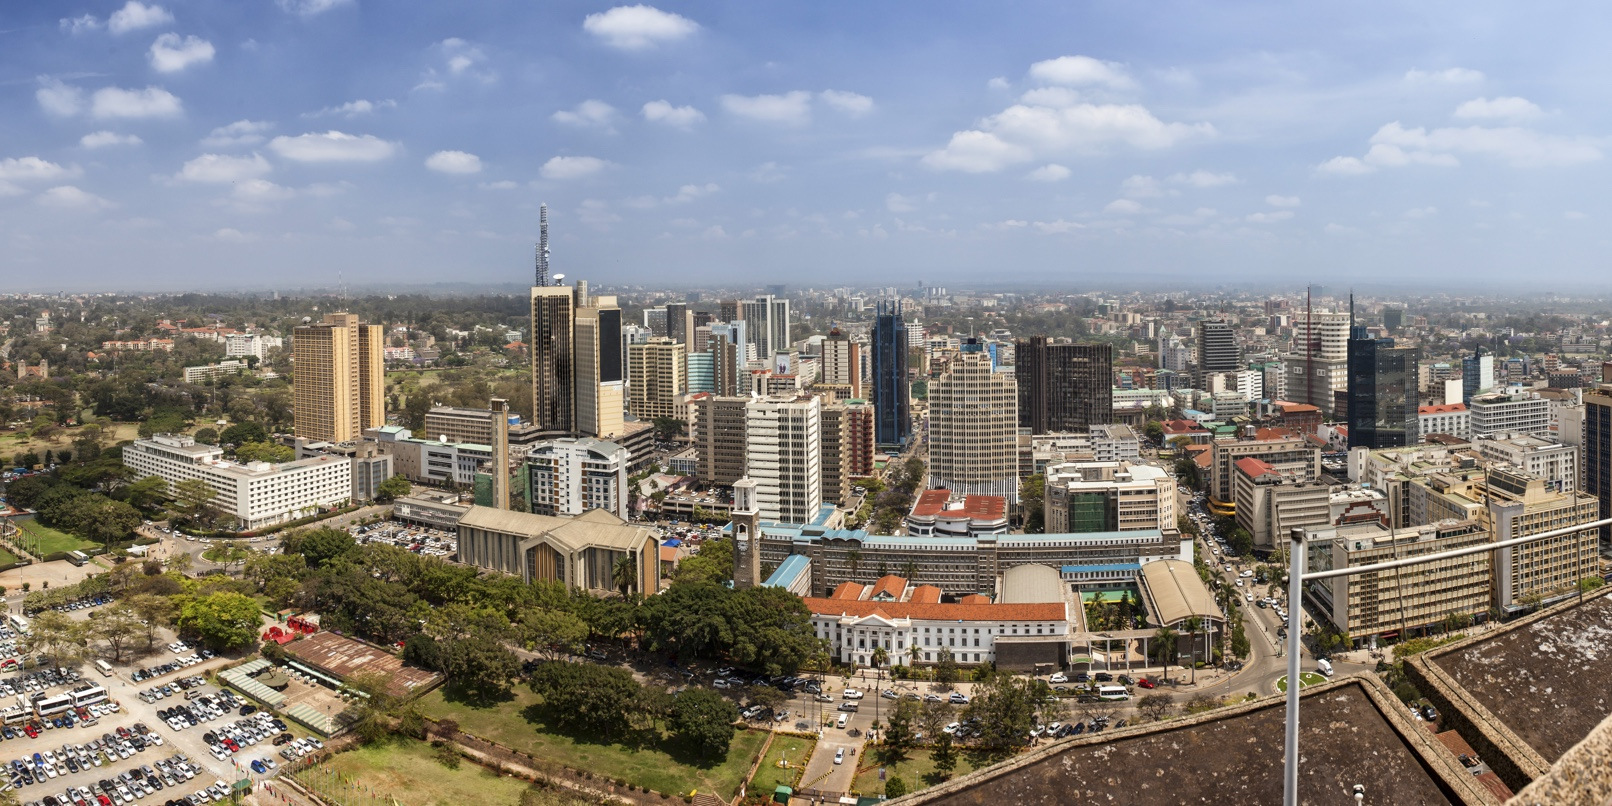 Tech in Africa: All the news you shouldn't miss